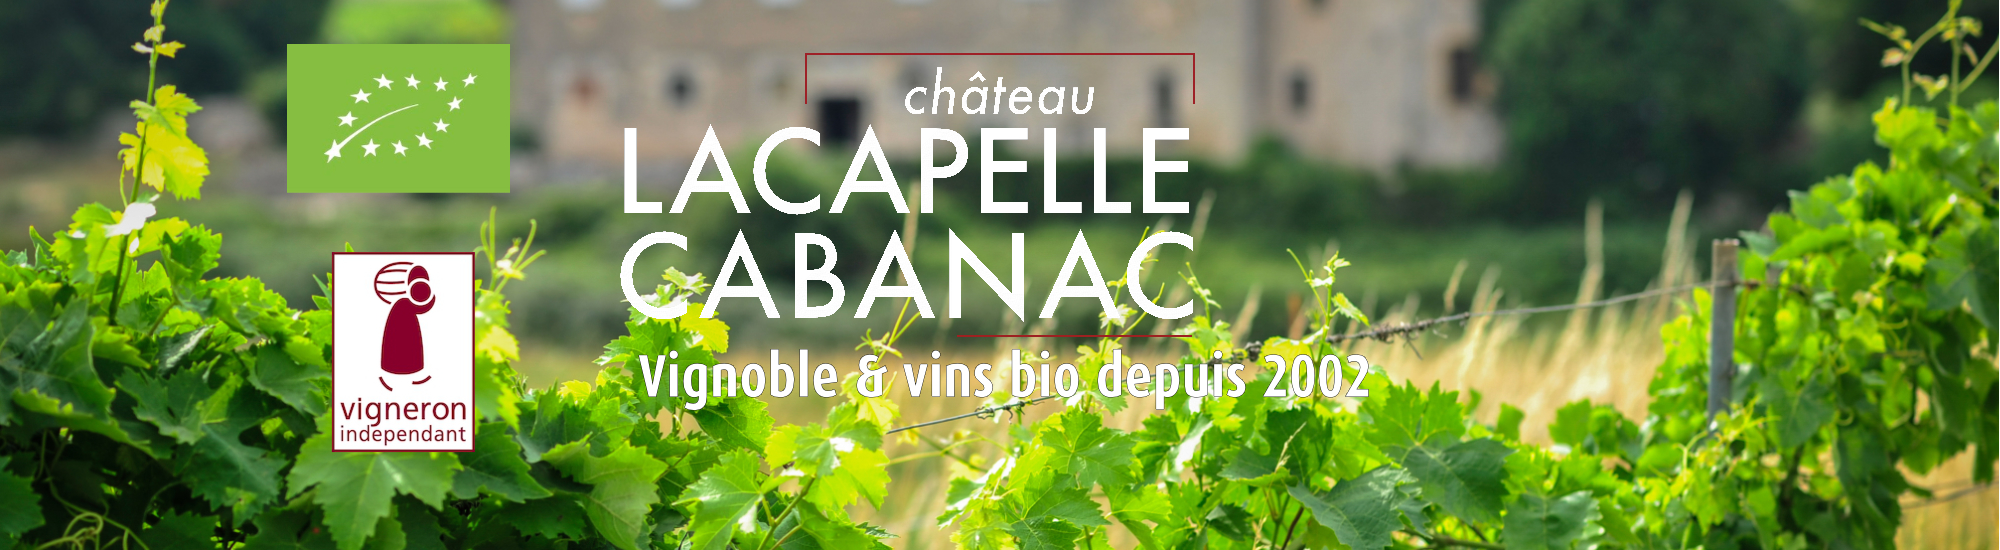 chateau lacapelle cabanac chai c lot tourisme c ory 31